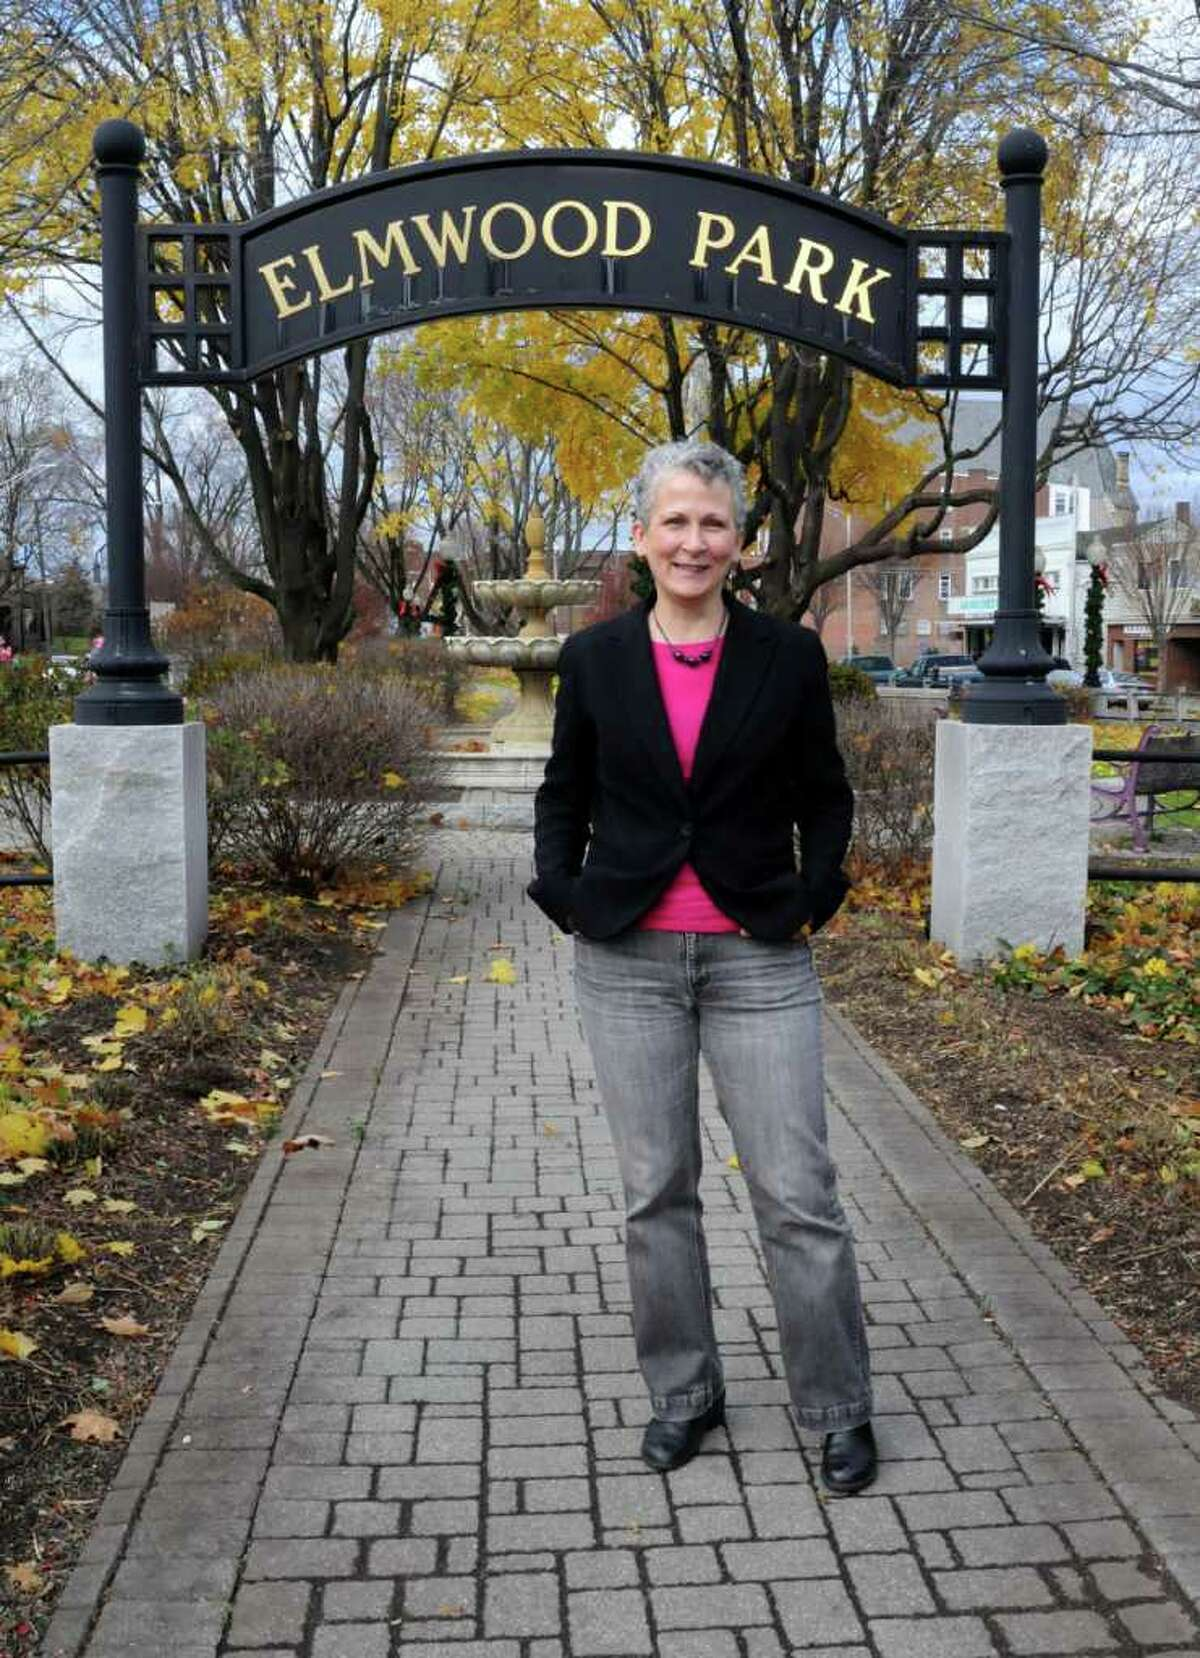 Jane Didona of Didona Associates is a landscape architect. Didona designs parks and outdoor spaces. Didona designed Elmwood Park in dowtown Danbury. Pictured here on Wed. Nov. 17, 2010 at the park.